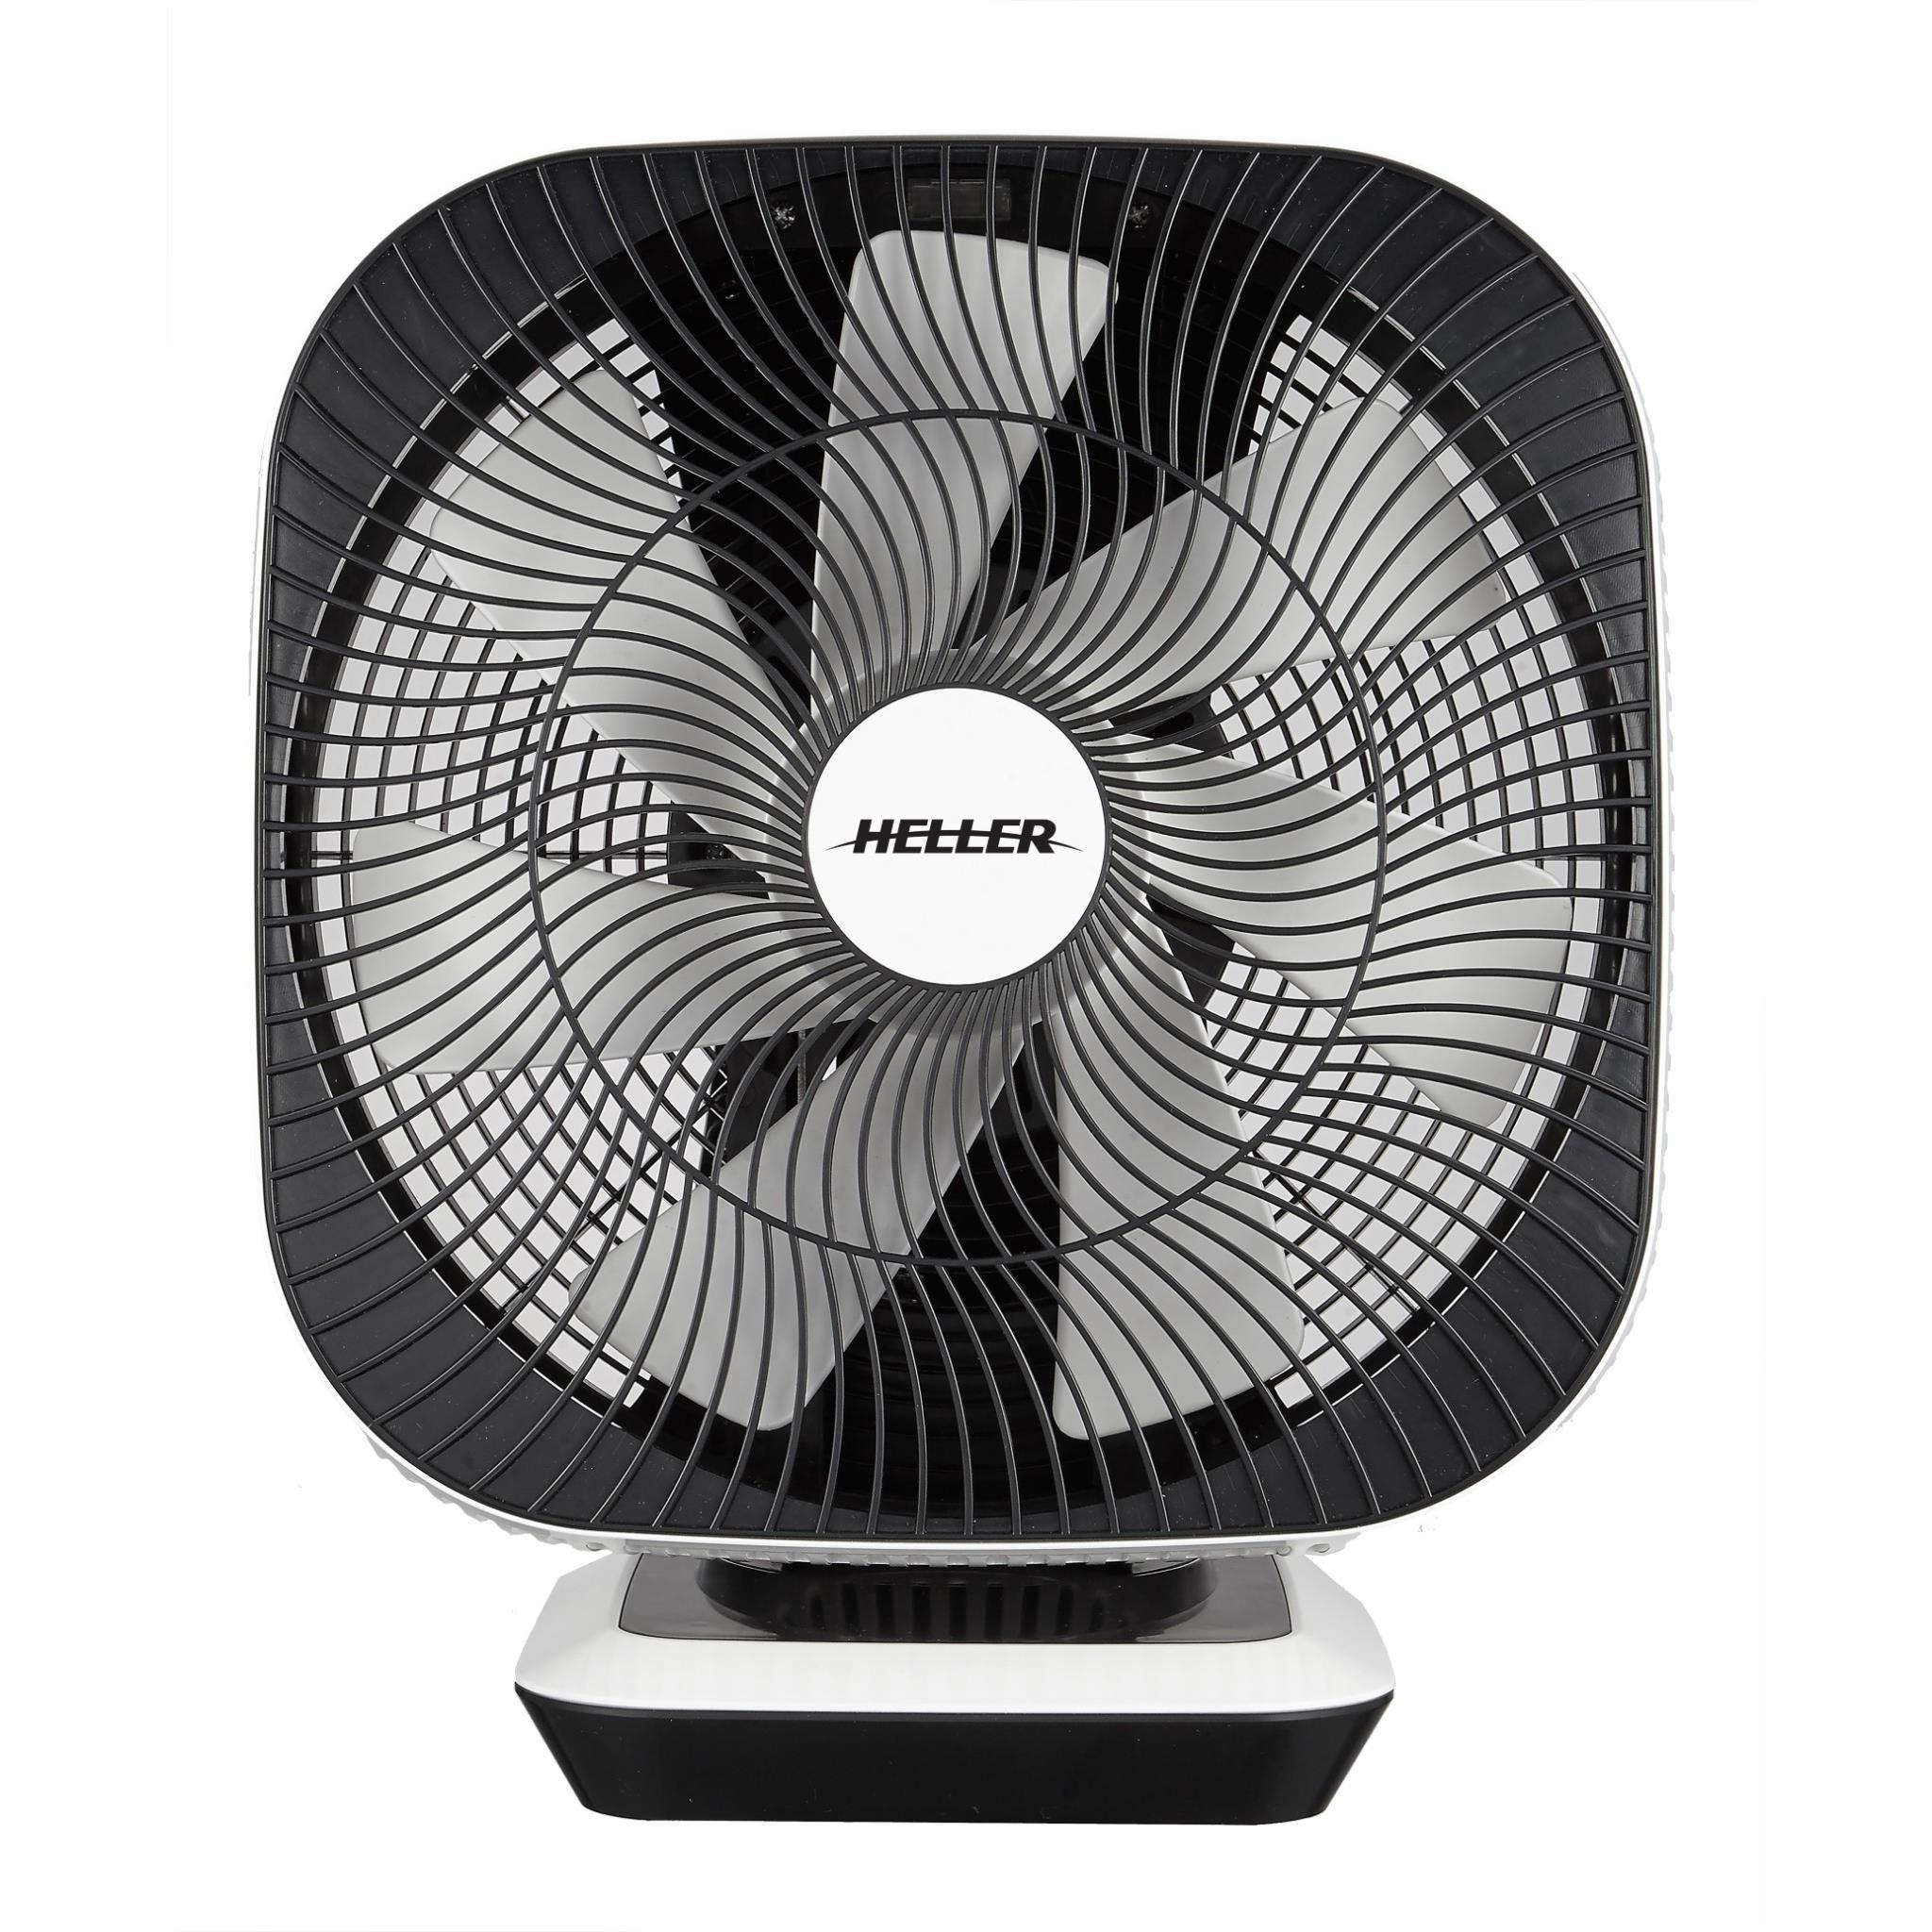 Heller HCDC30 30cm Oscillating Desk Fan